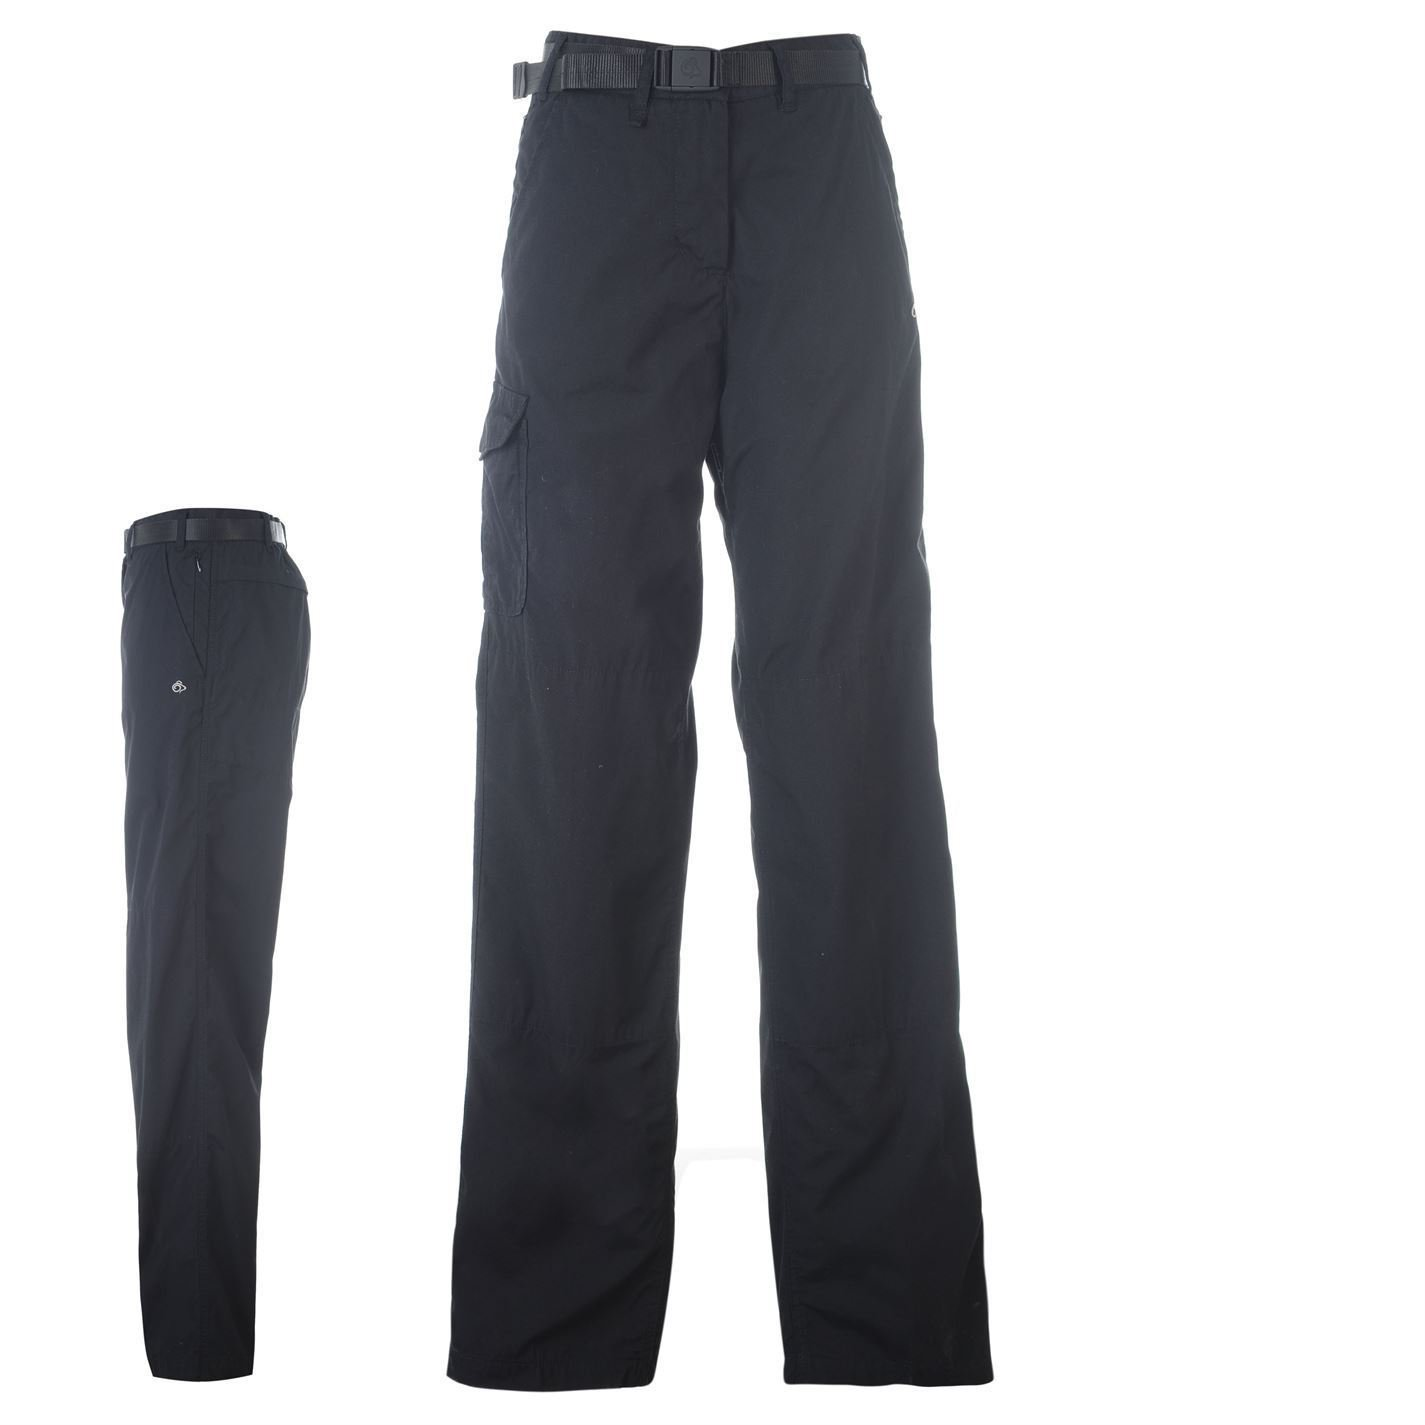 Craghoppers Womens Kiwi Trousers Pants Ladies